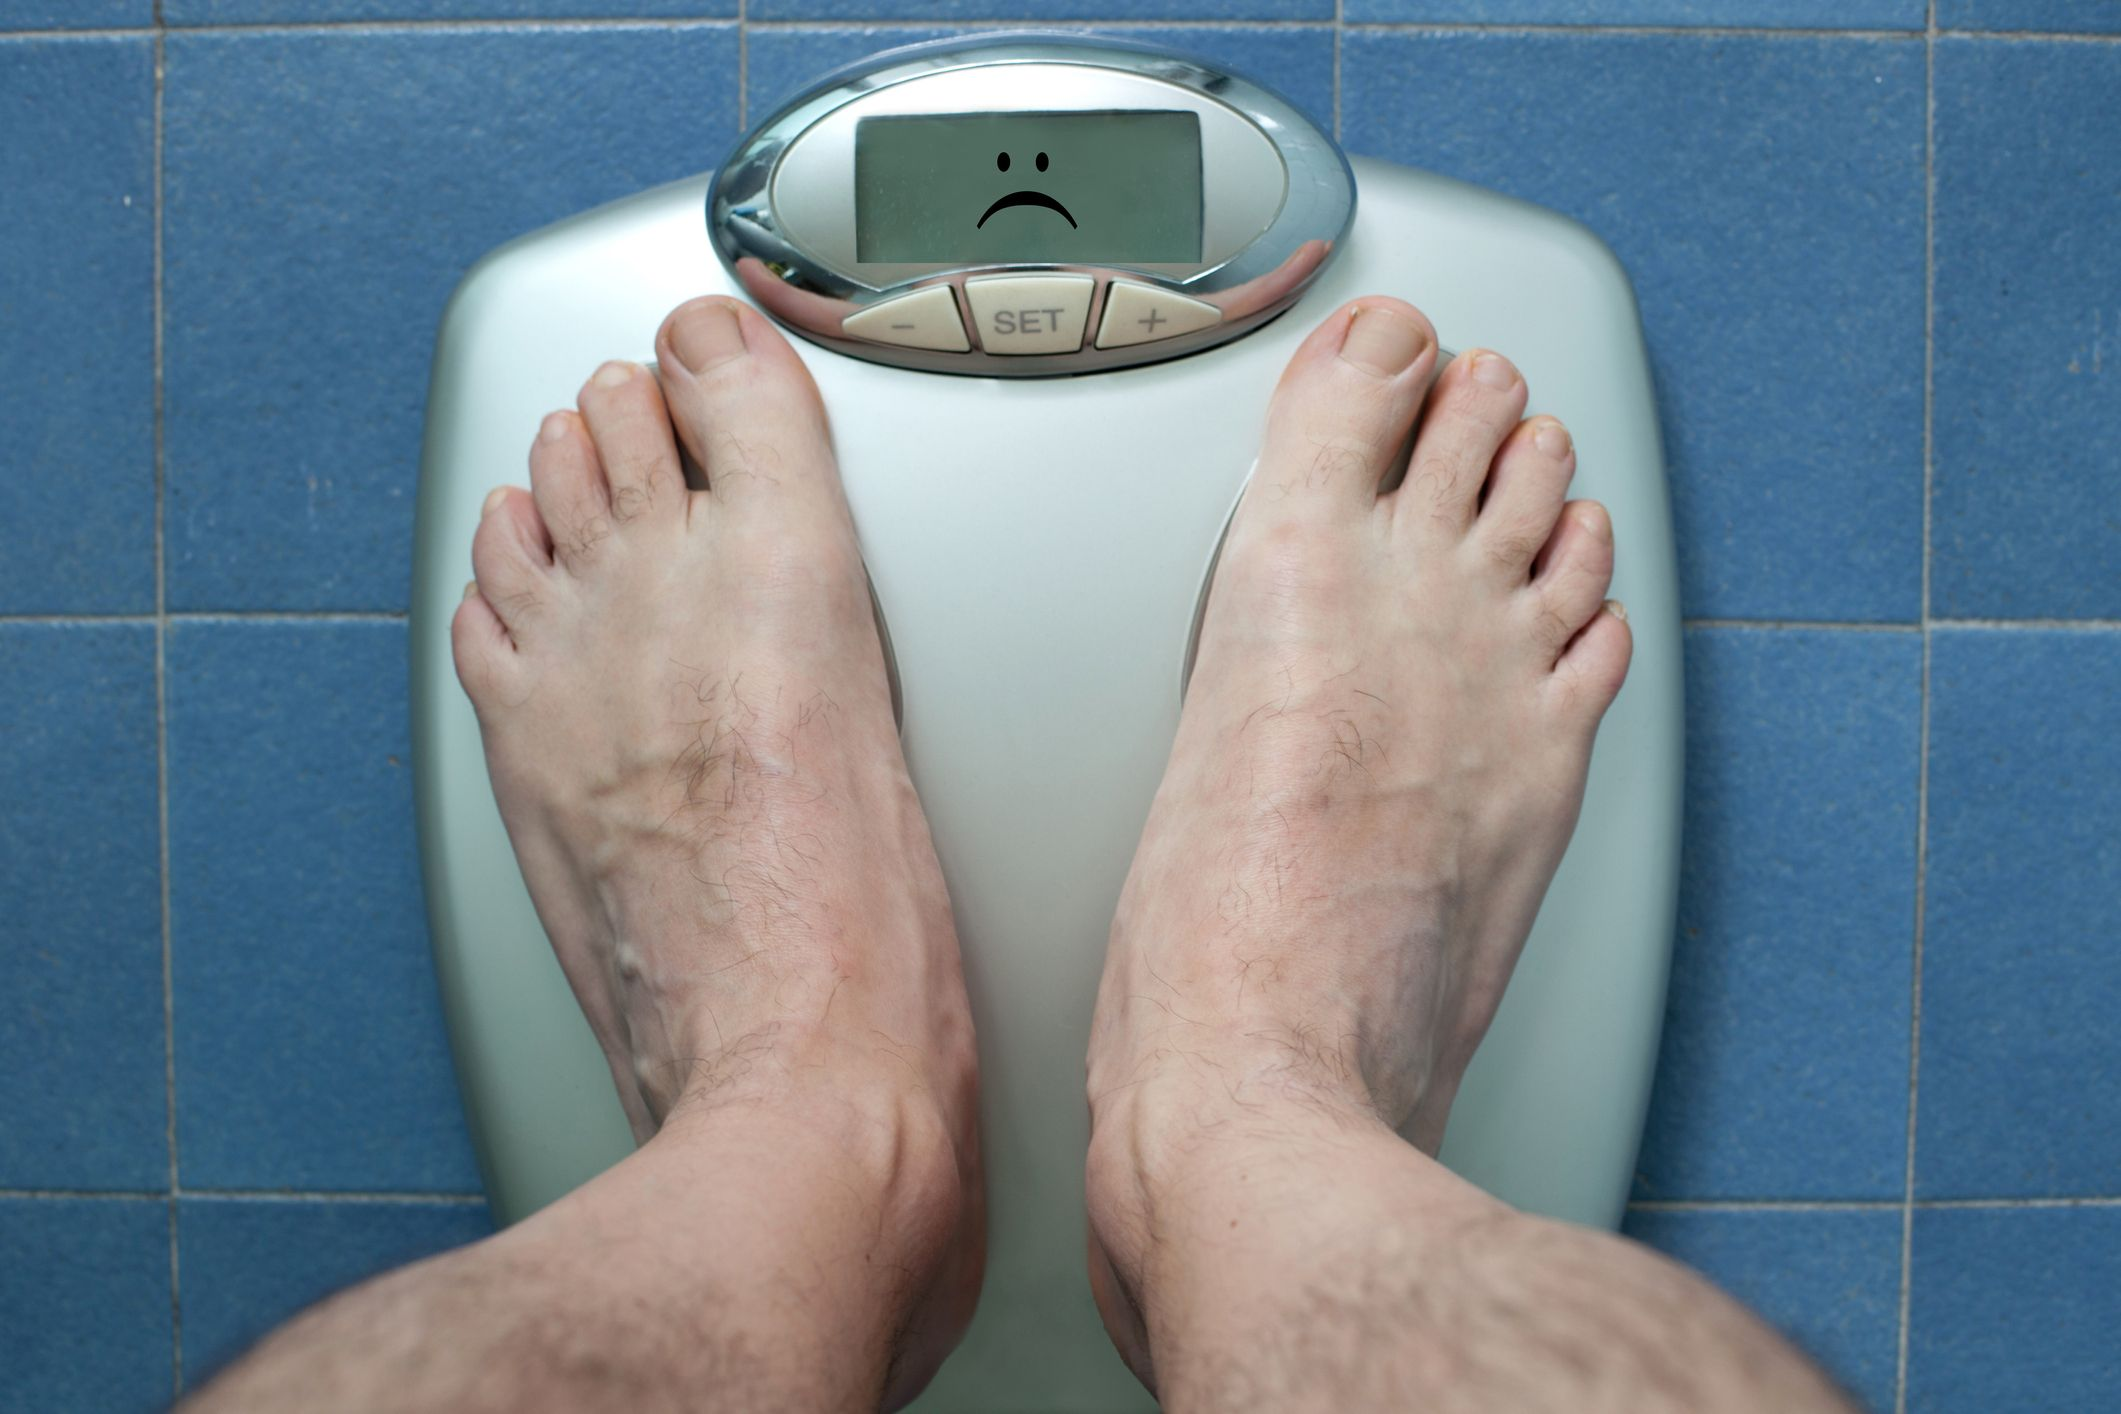 Why You Should Be Wary of Body Fat Tests